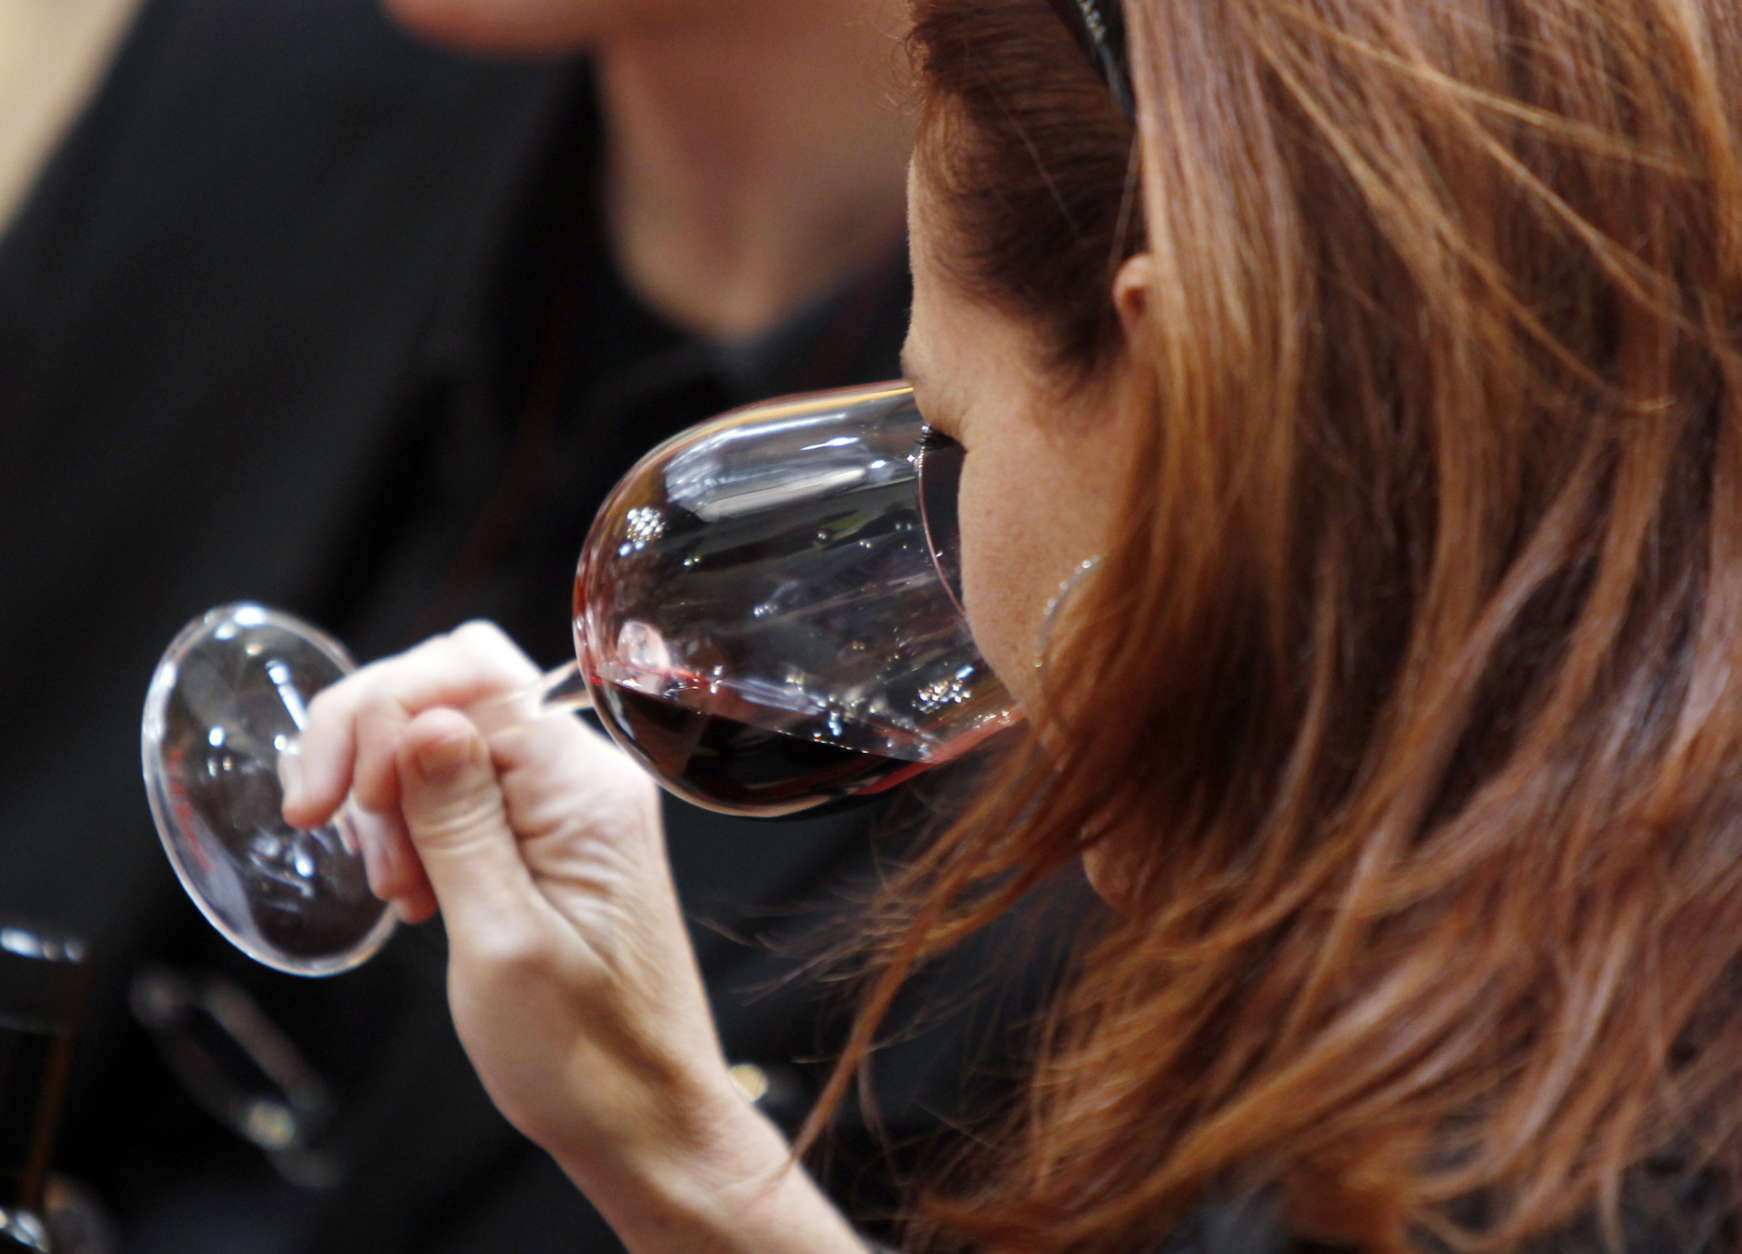 """A woman tastes a glass of Tuscan red wine on the opening day of the 44th edition of the annual International Wine and Spirits Exhibition """"Vinitaly"""", in Verona, northern Italy, Thursday, April 8, 2010. The wine exhibition runs until April 12. (AP Photo/Luca Bruno)"""